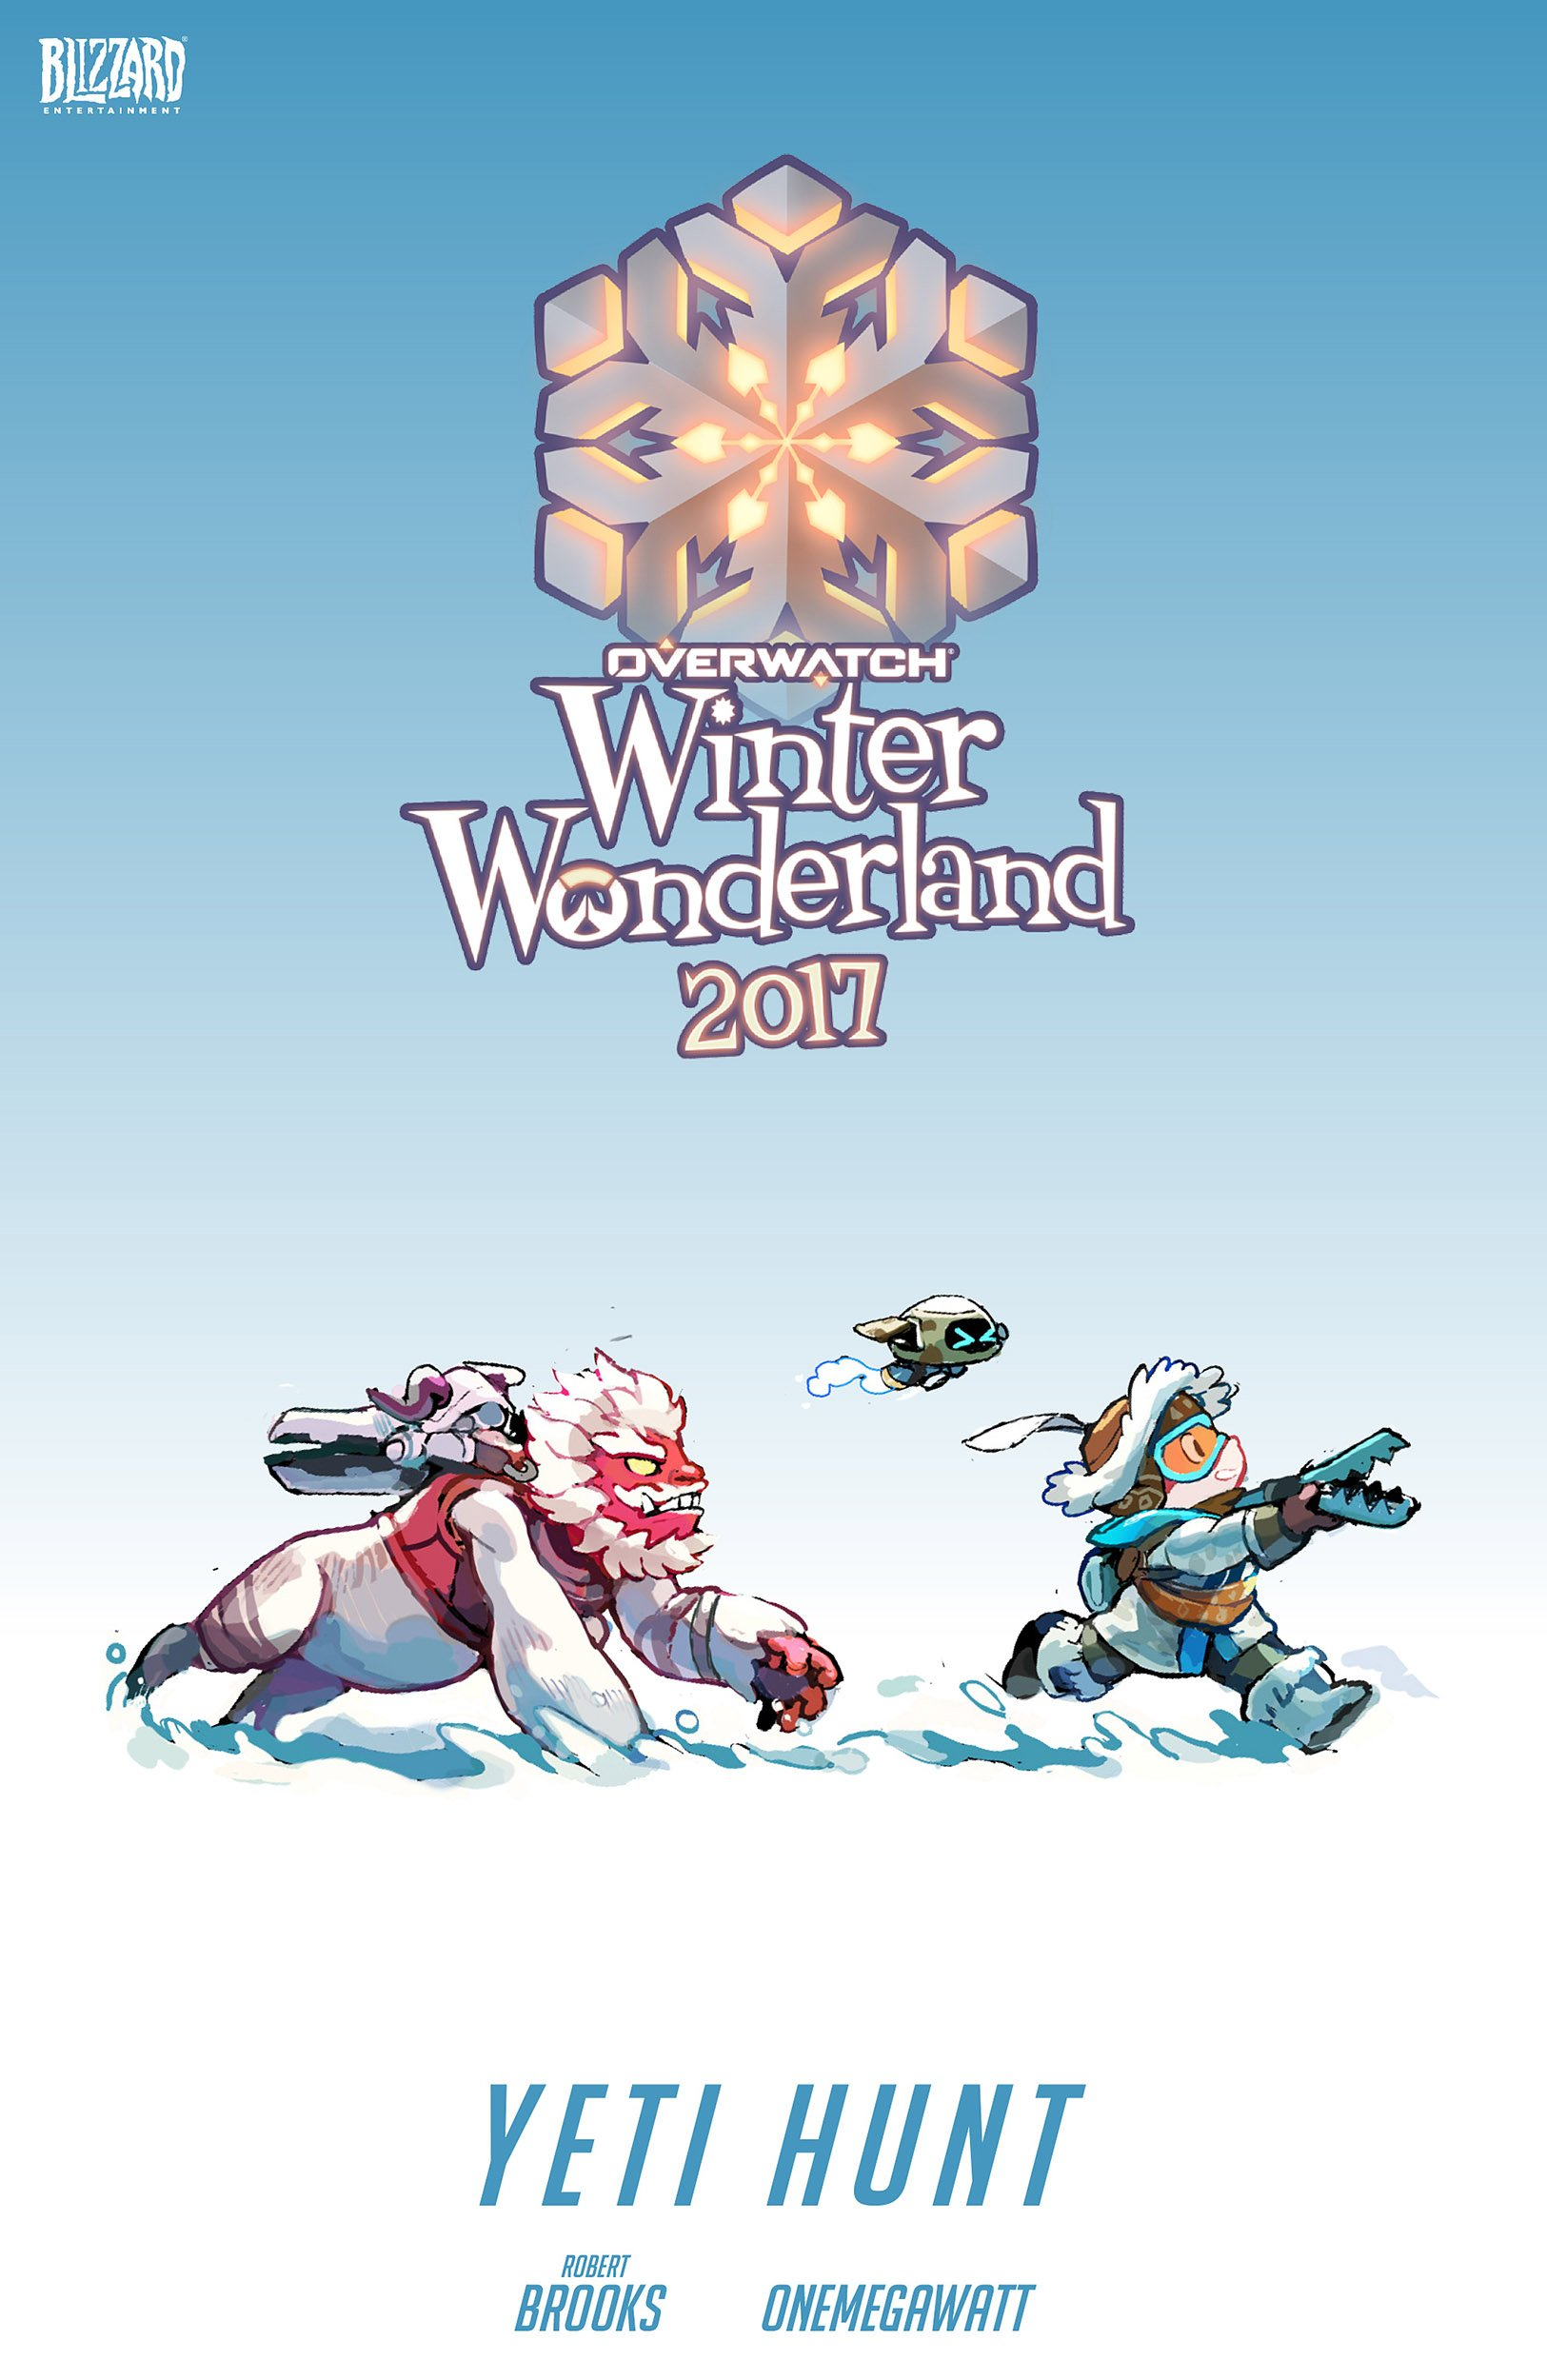 Overwatch - Winter Wonderland 2017: Yeti Hunt (2017)